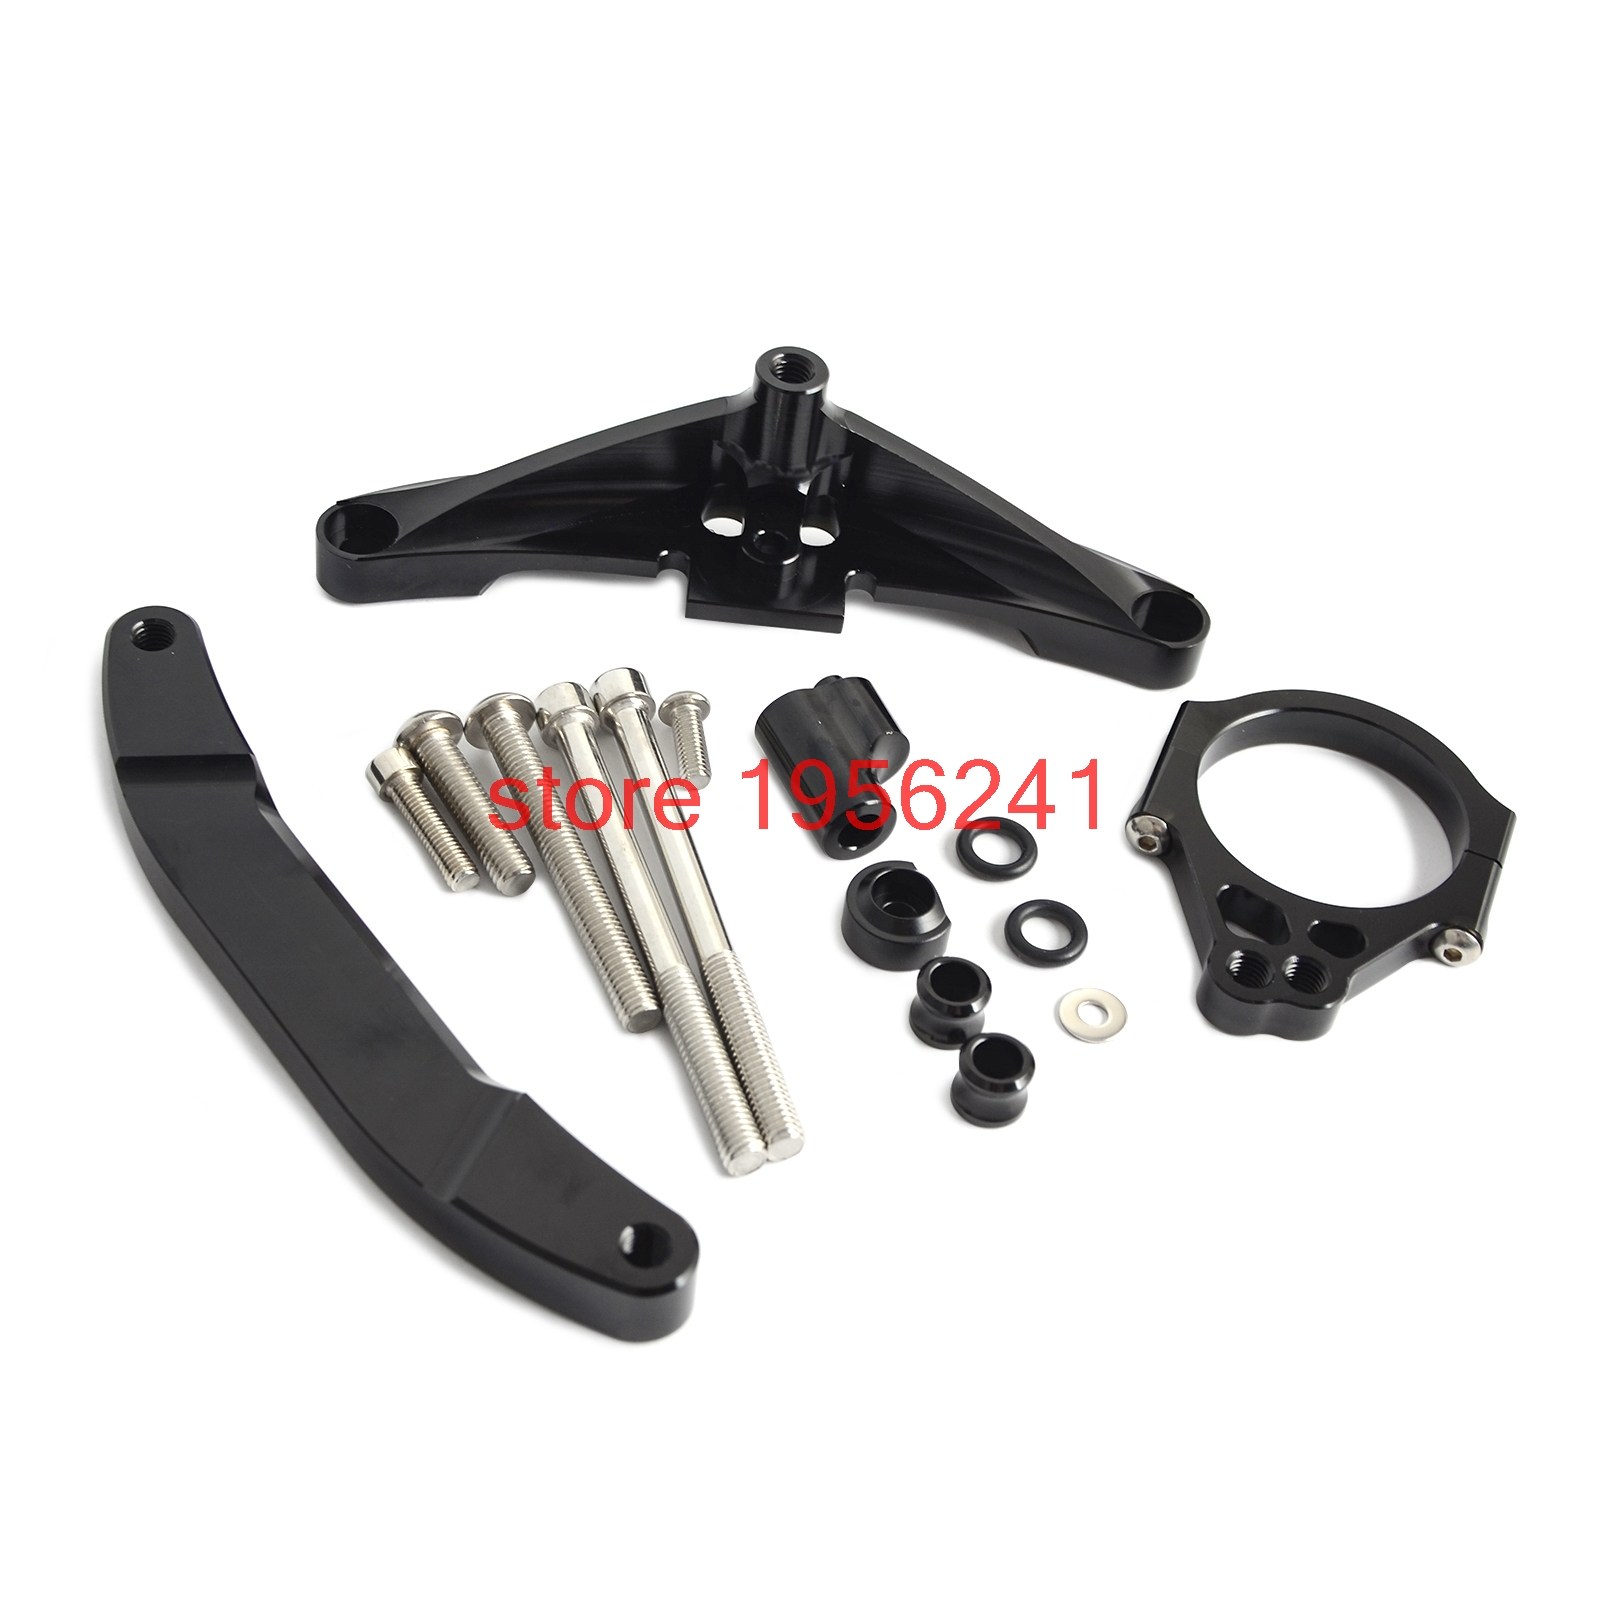 Motorcycle Mounting Bracket Kit for Yamaha  FZ1 Fazer 2006 - 2015 2007 2008 2009 2010 2011 2012 2013 2014 aftermarket free shipping motorcycle parts eliminator tidy tail for 2006 2007 2008 fz6 fazer 2007 2008b lack